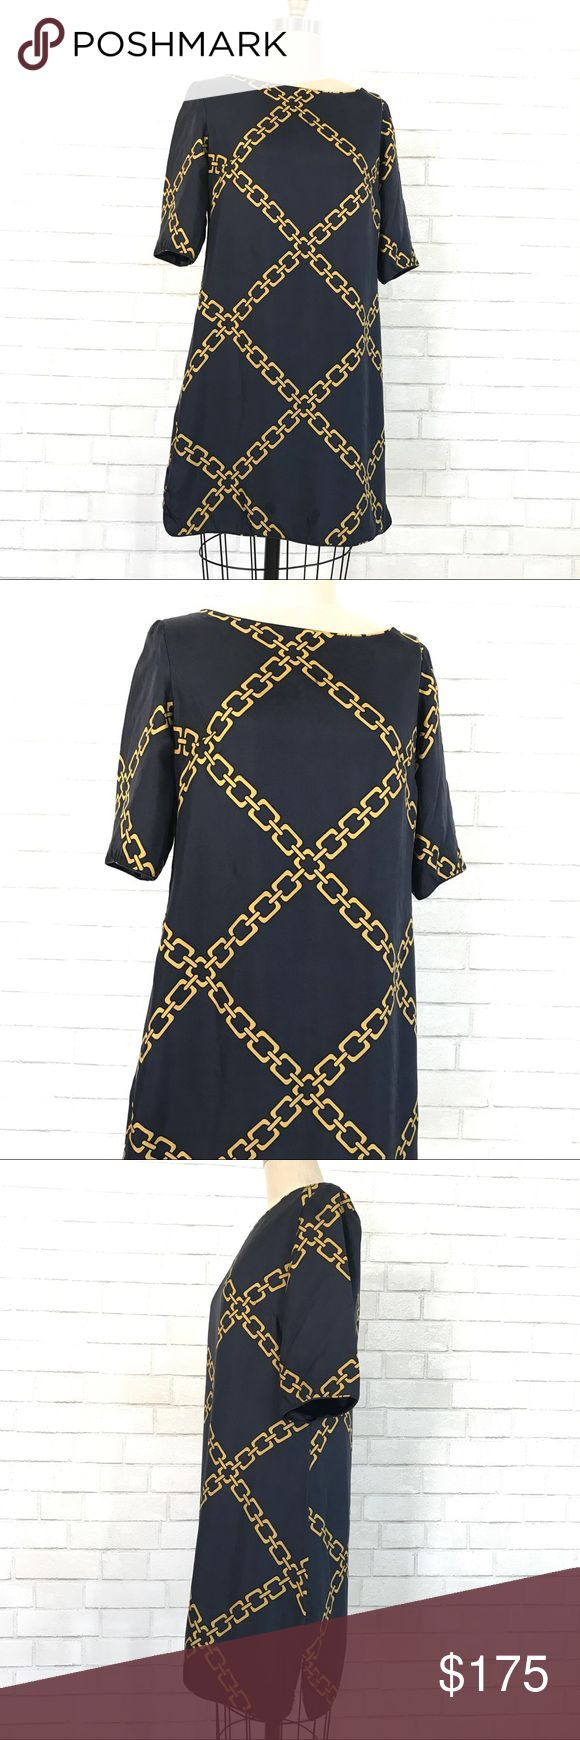 Silk Gold chain printed Elizabeth McKay dress Stunning silk shirt dress by Elizabeth McKay   Size 6, soft lux 100% silk shell and full underlining, 5 button up back, New never worn no tags, this dress is amazing perfect for summer with sandals and amazing with skinniest when it cold out.   Ⓜ️Chest 40 Ⓜ️Waist 38 Ⓜ️Hips 42 Ⓜ️Length 34 Ⓜ️Sleeves 13  ✅Bundle and save  ✅🚭 🚫No Trading 🙅🏻 Poshmark rules only‼️ Elizabeth McKay Dresses